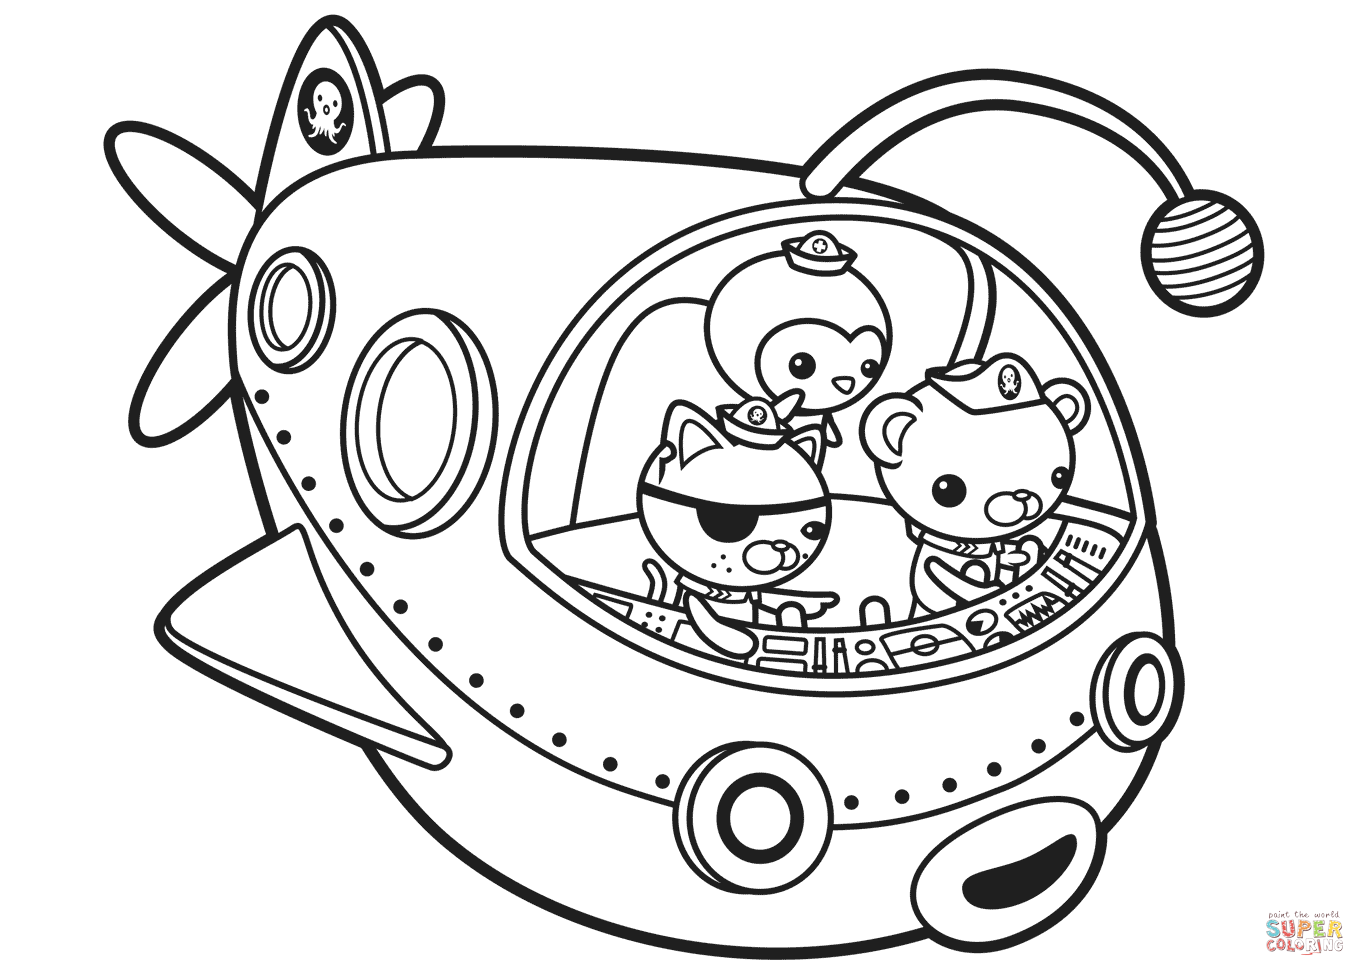 Octonauts Off To Adventure Coloring Page